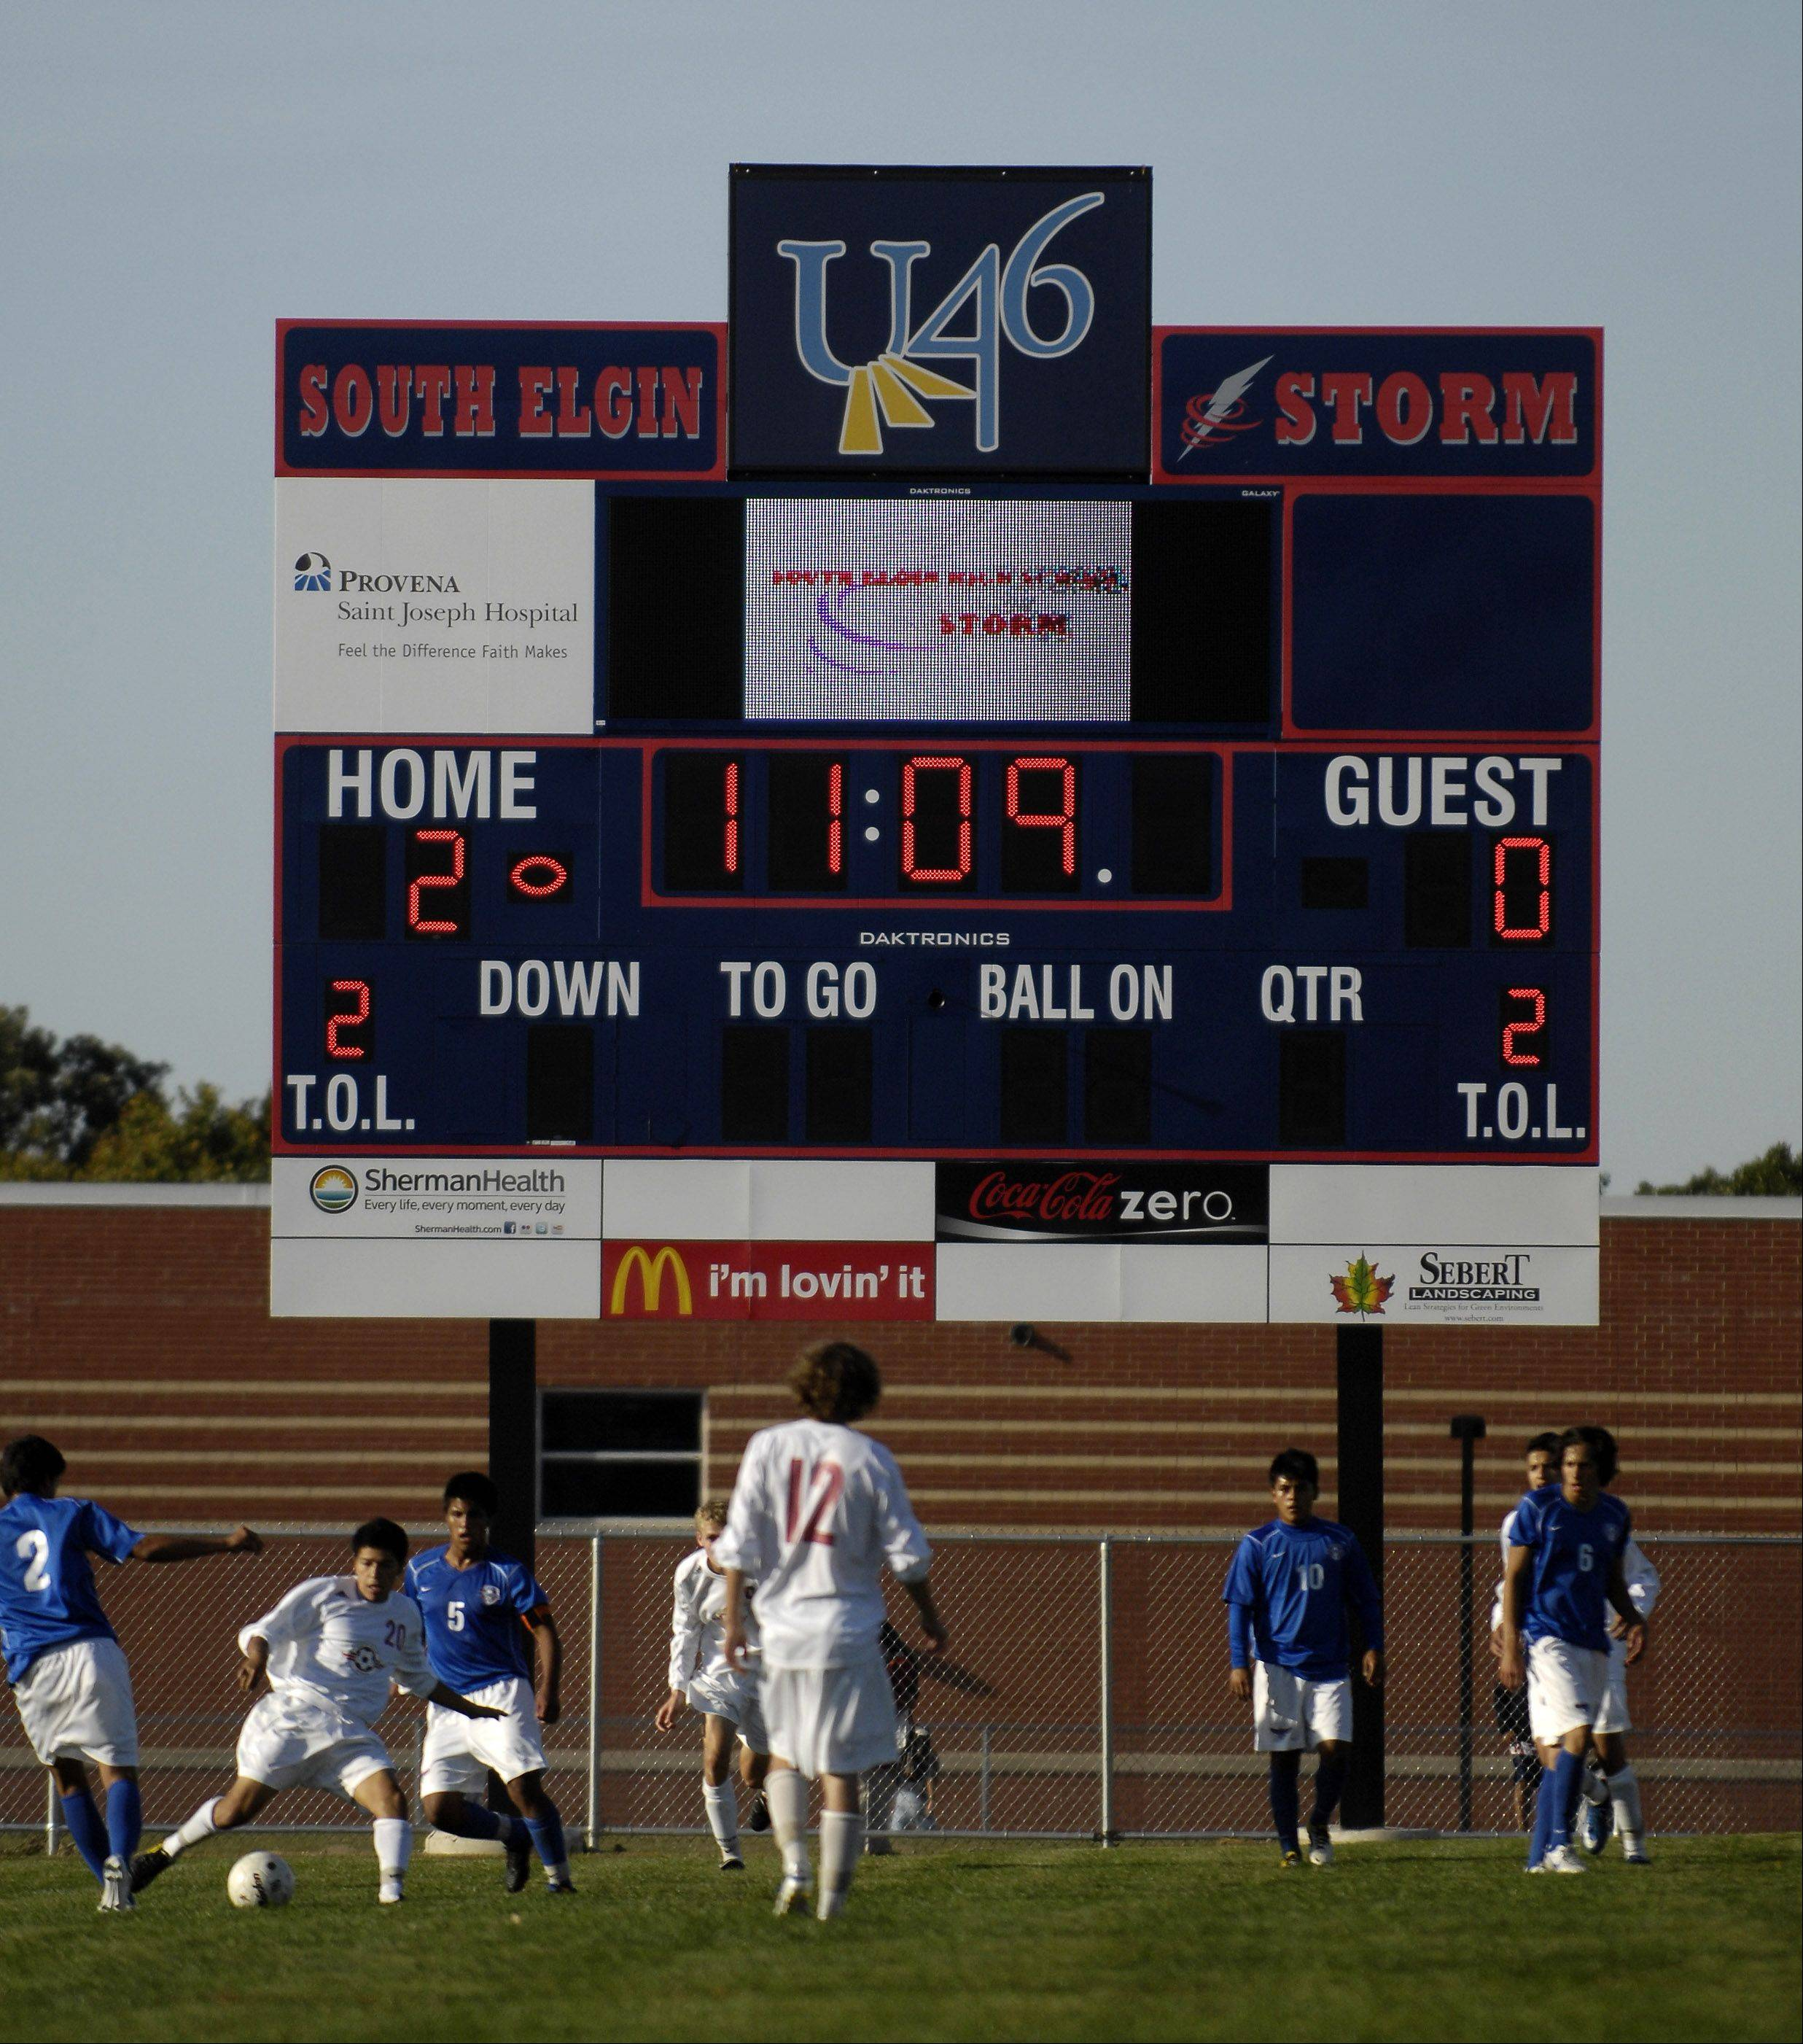 Glenbard District 87 officials are considering whether to put advertising on the scoreboards at some of its high schools. Other suburban schools already have similar arrangements. The stadium scoreboard at South Elgin High School, above, displays the names of sponsors.